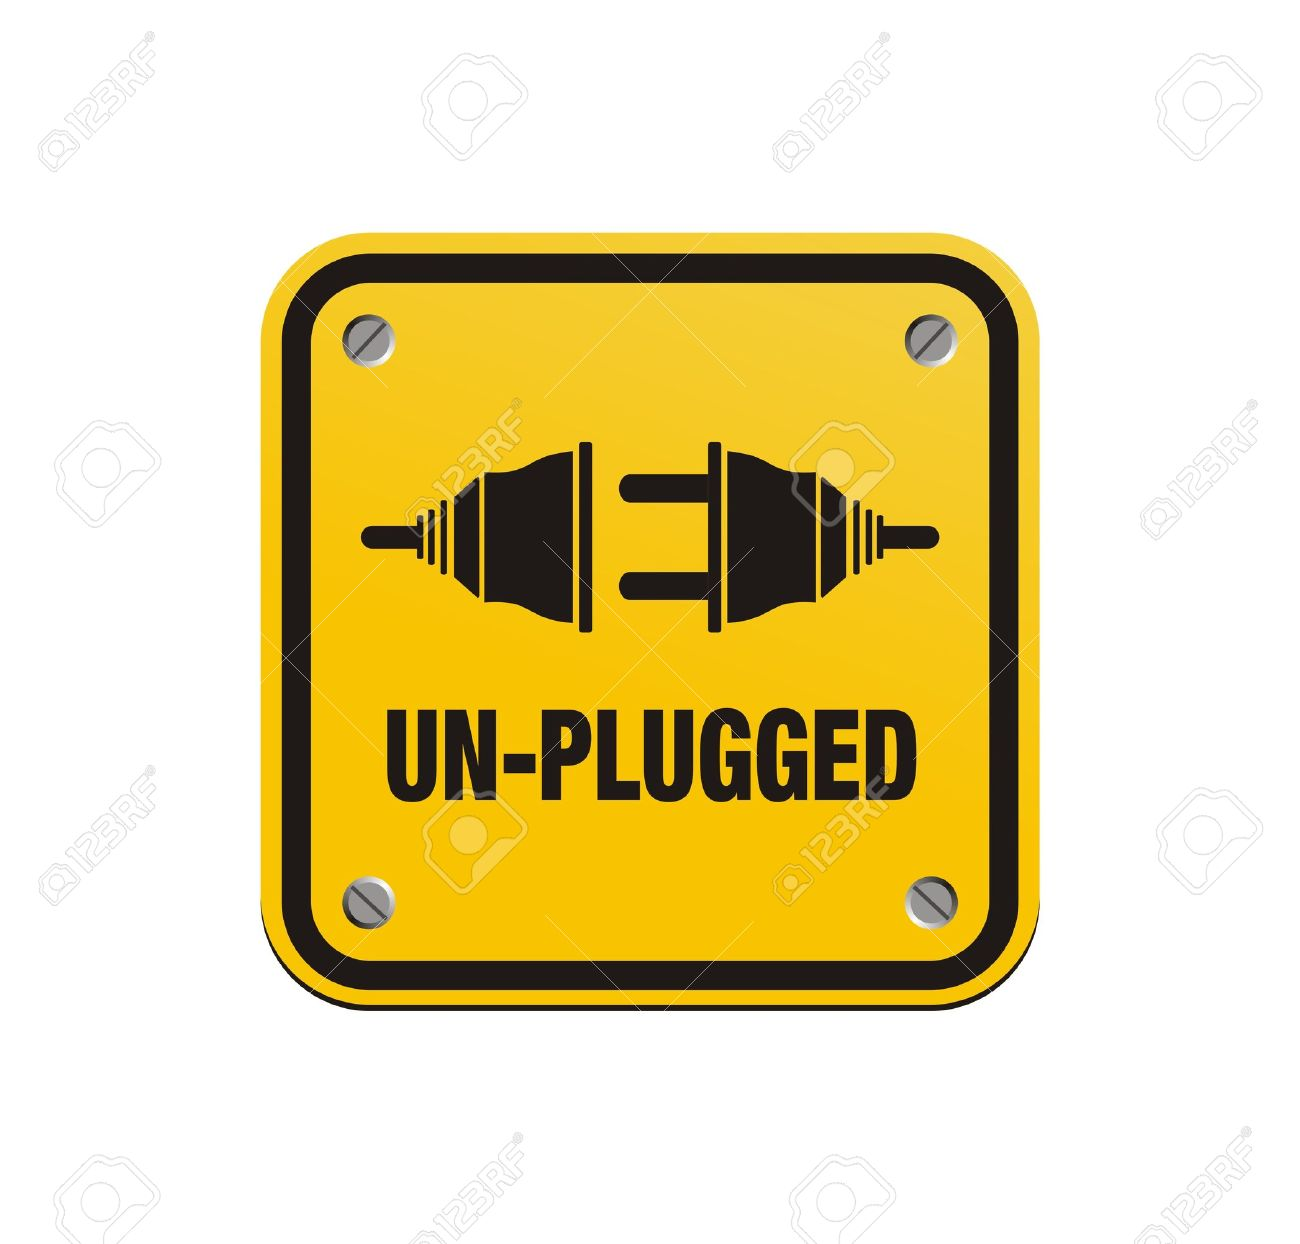 Unplugged Square Signs Royalty Free Cliparts, Vectors, And Stock ... for unplug icon  29jwn